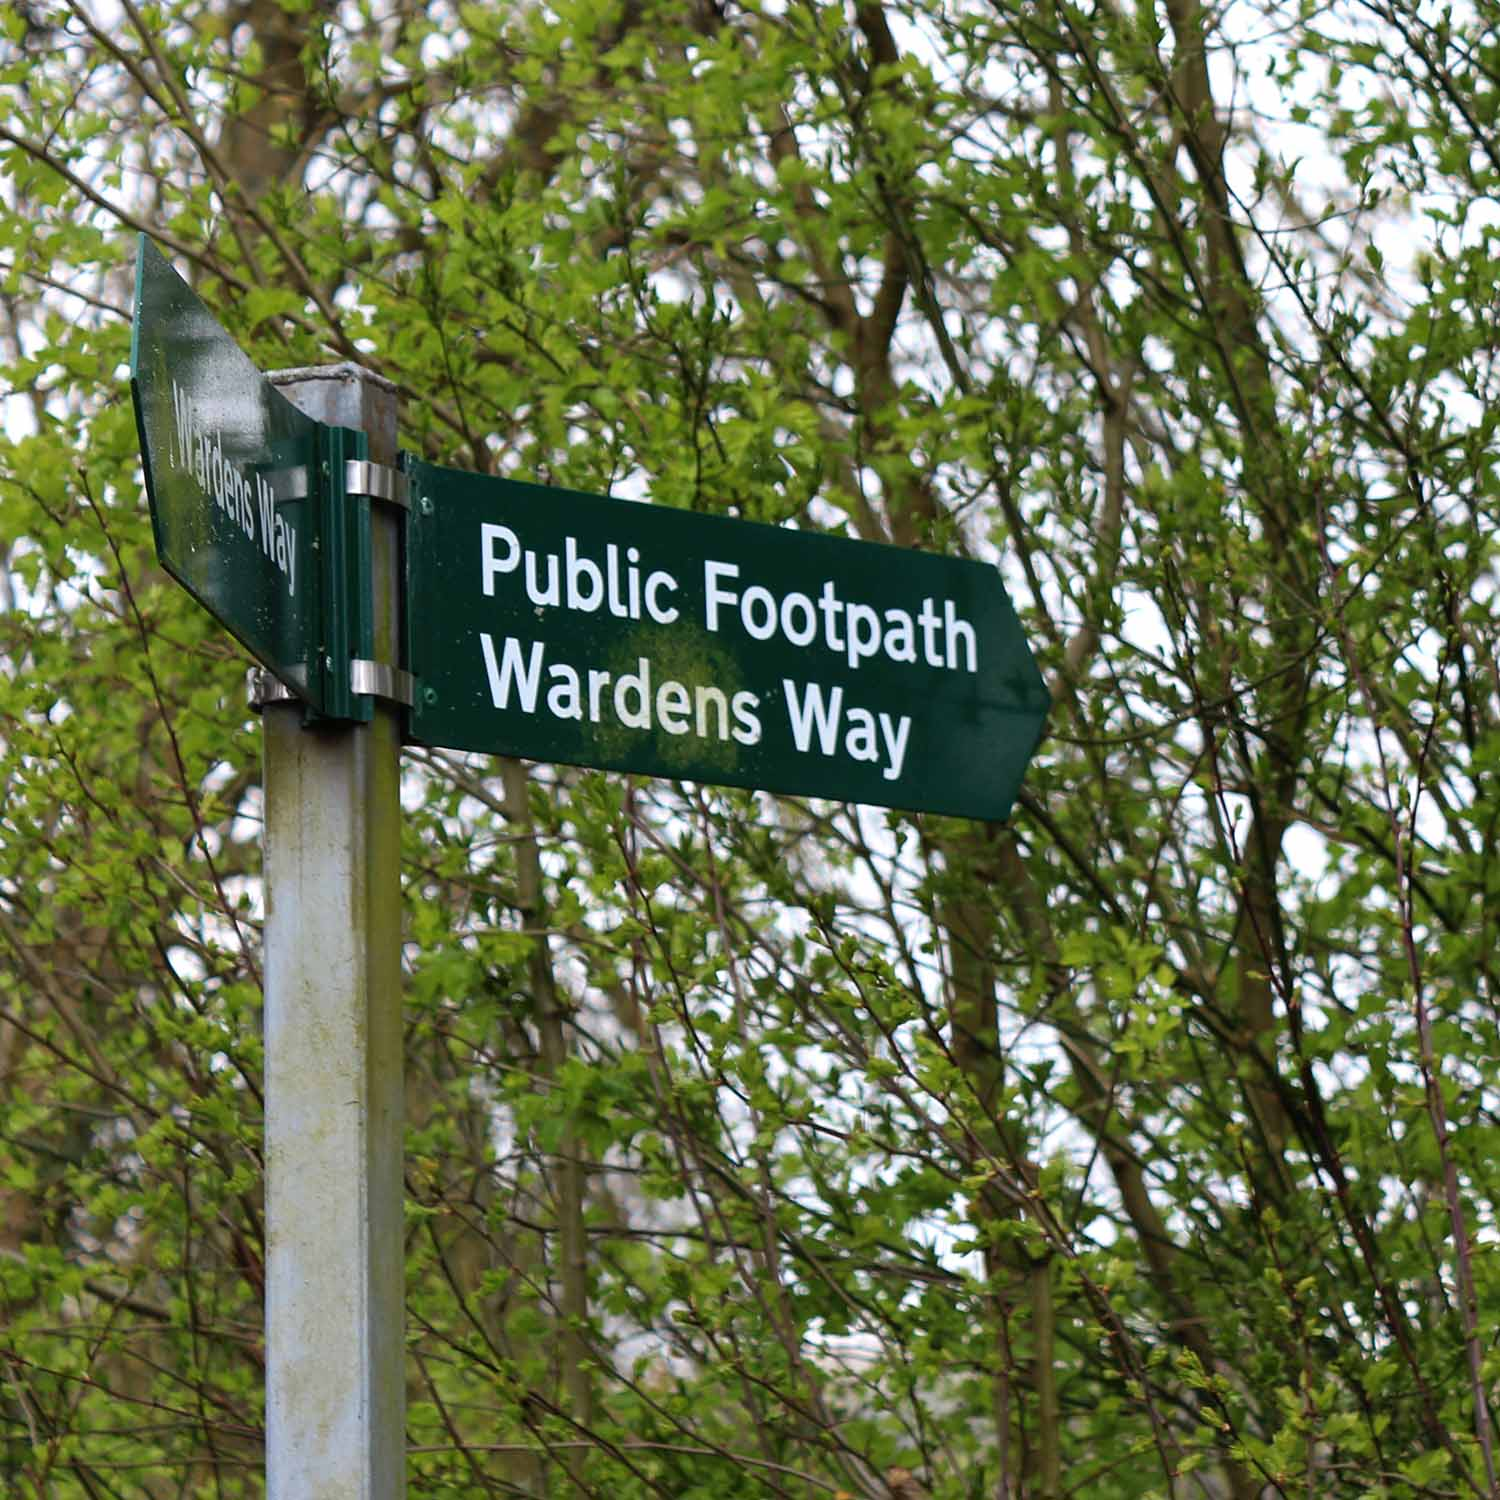 wardens way - the weekend guide - walking path from Bourton on the Water